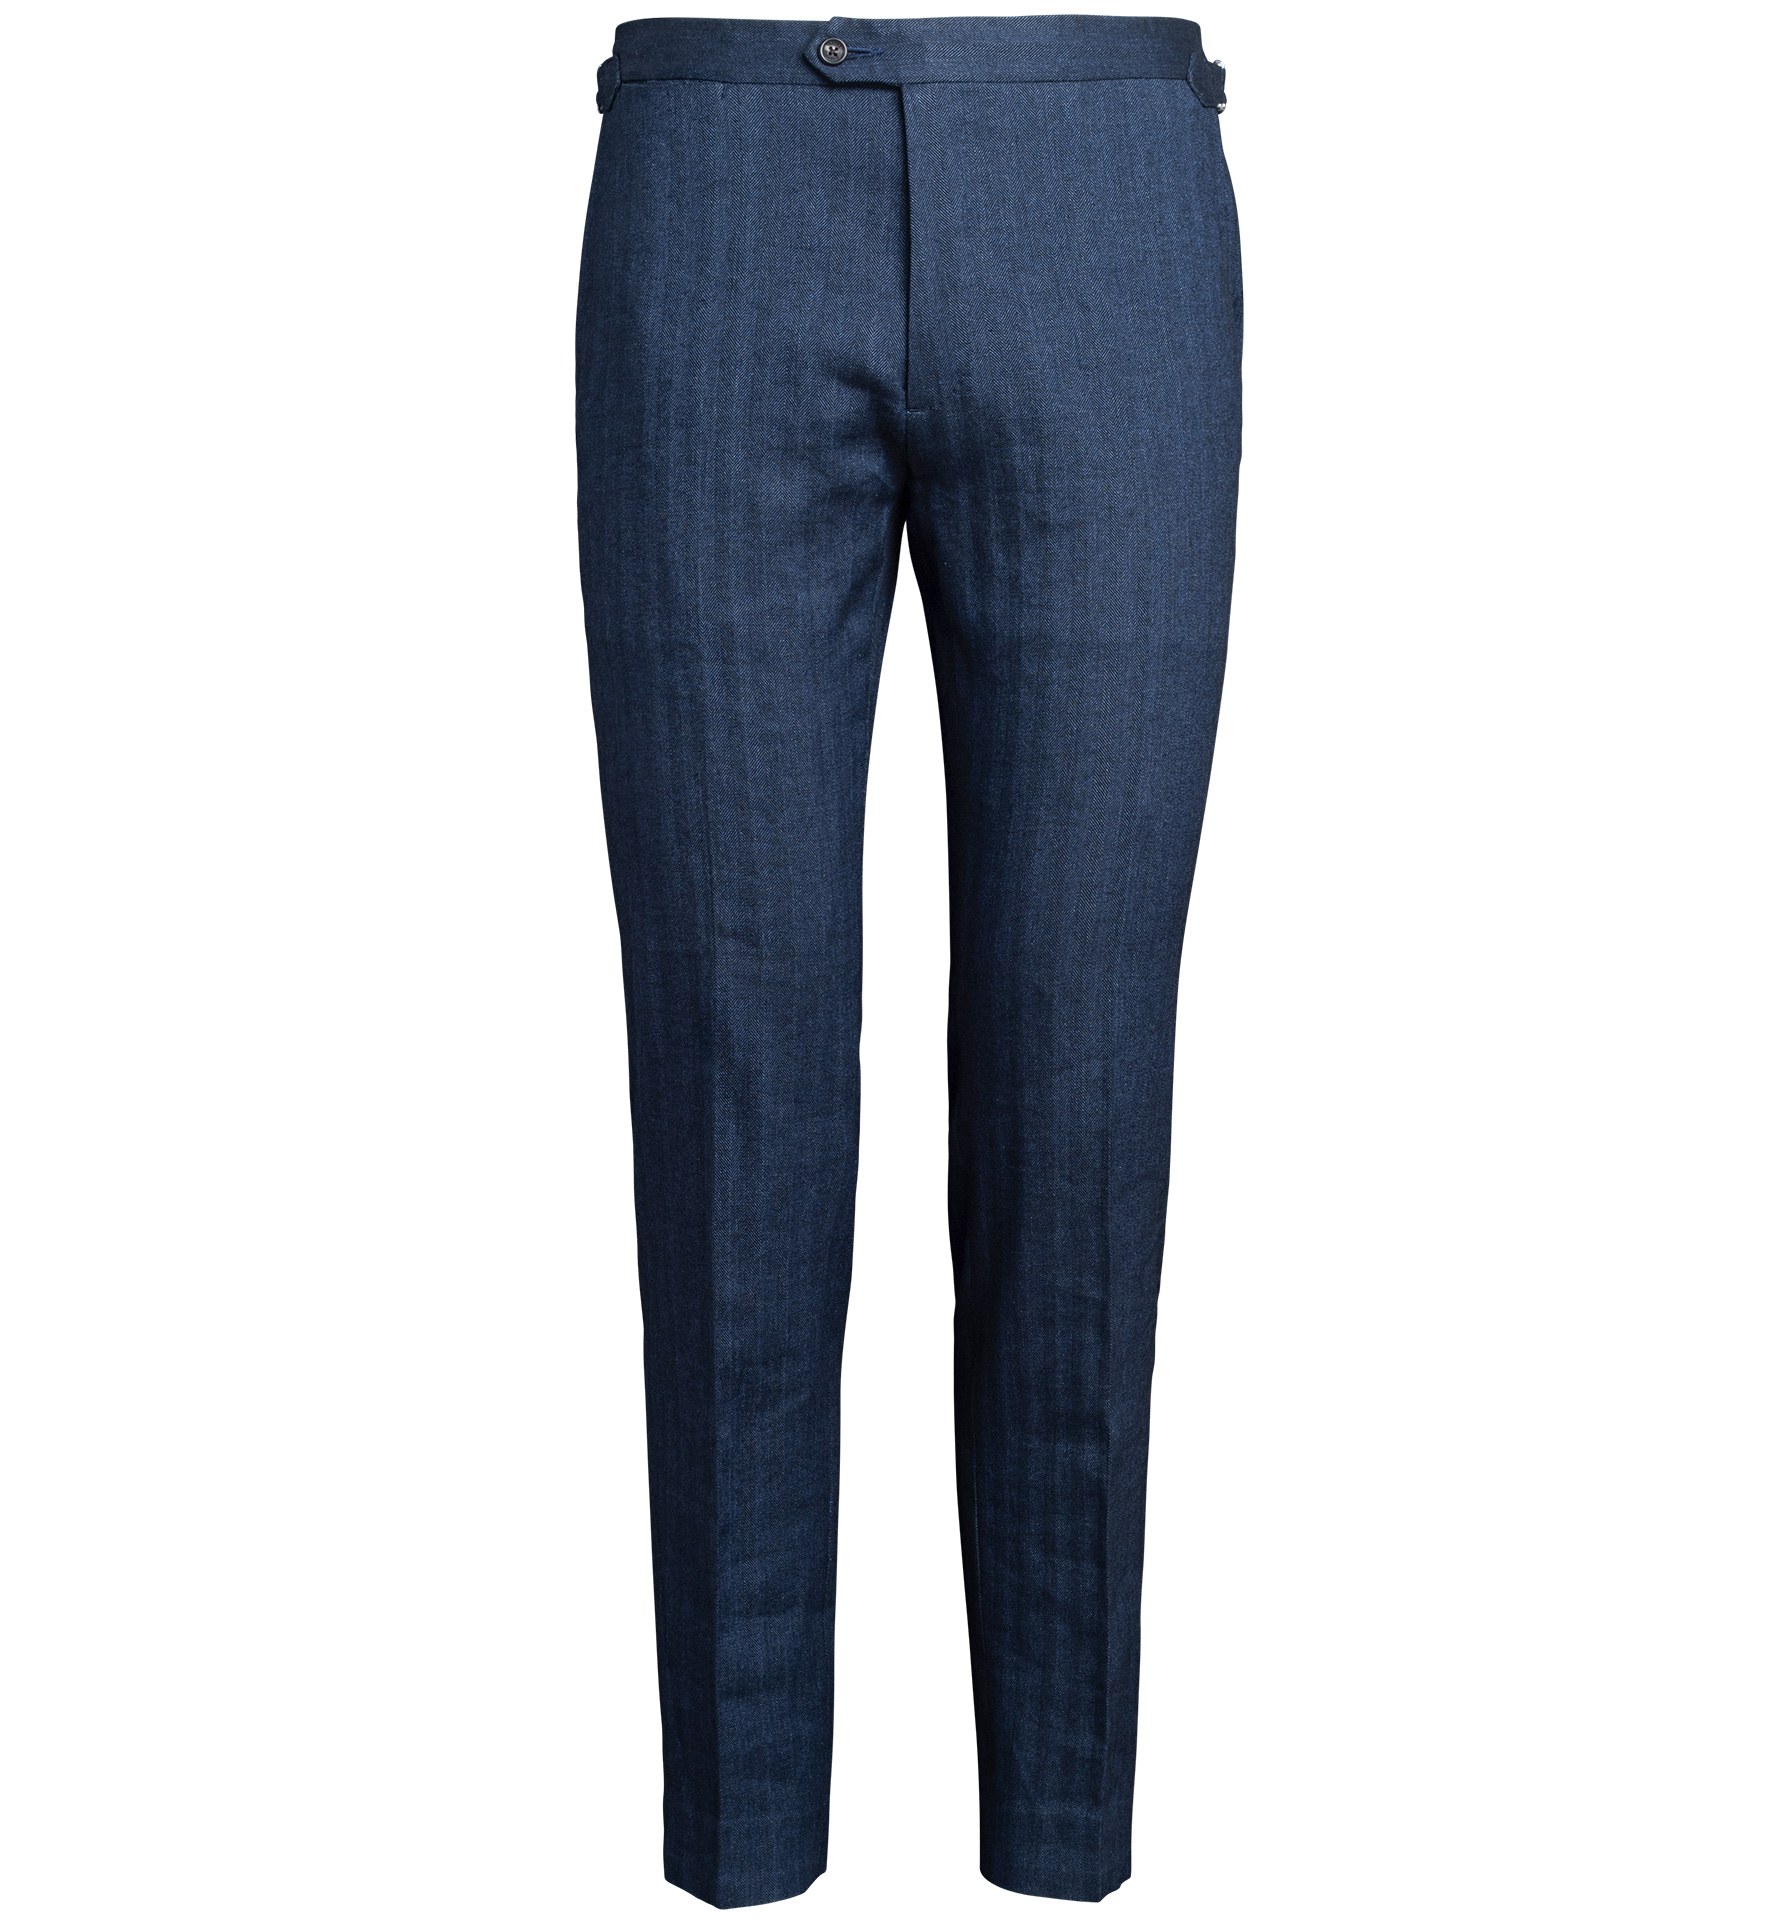 Zoom Image of Allen Navy Cotton and Linen Stretch Herringbone Trouser